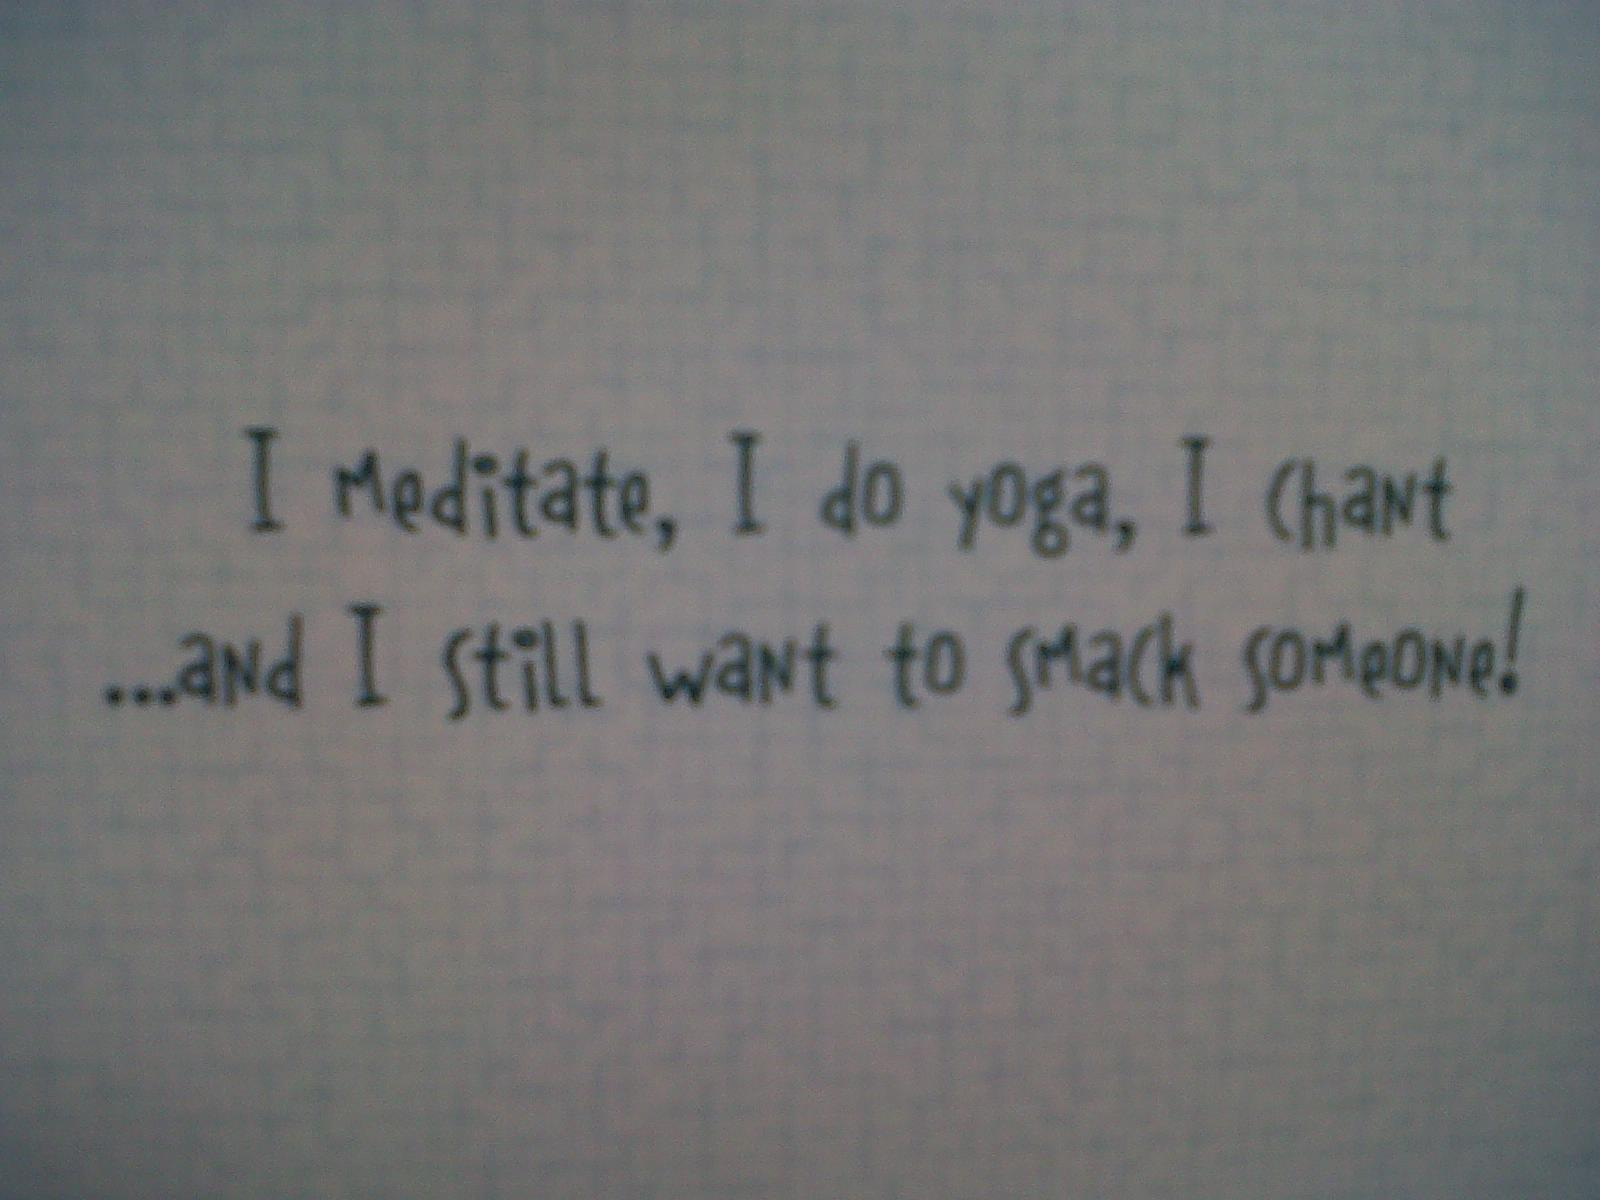 Best Clarity Quote ~ I meditate , I do yoga, I chant and I still want to smack someone !